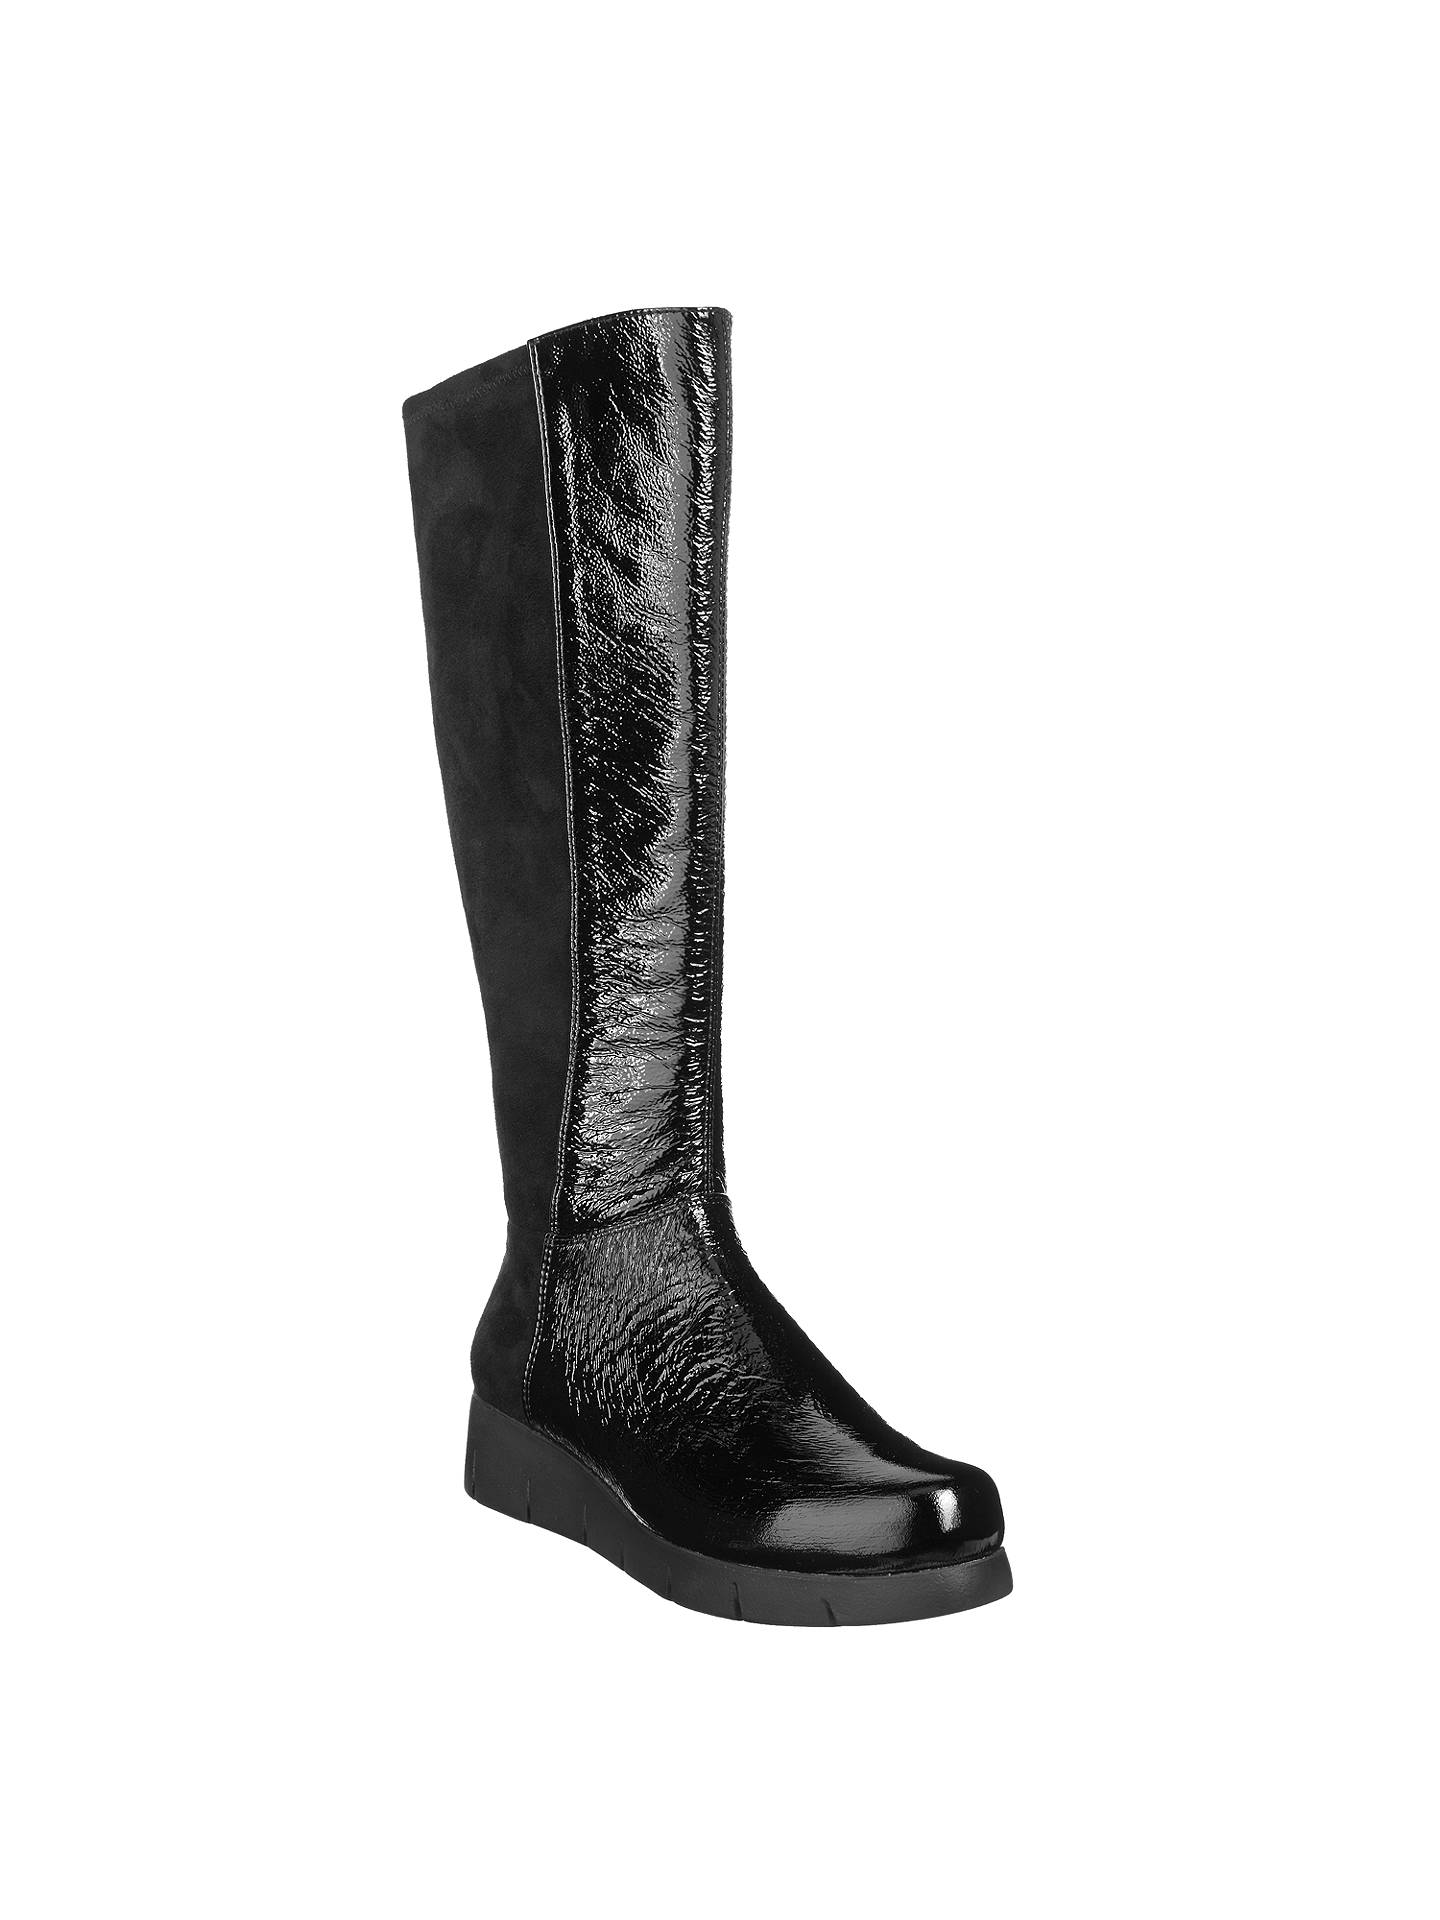 9cce441d3bf Unisa Folio Flatform Knee High Boots, Black at John Lewis & Partners